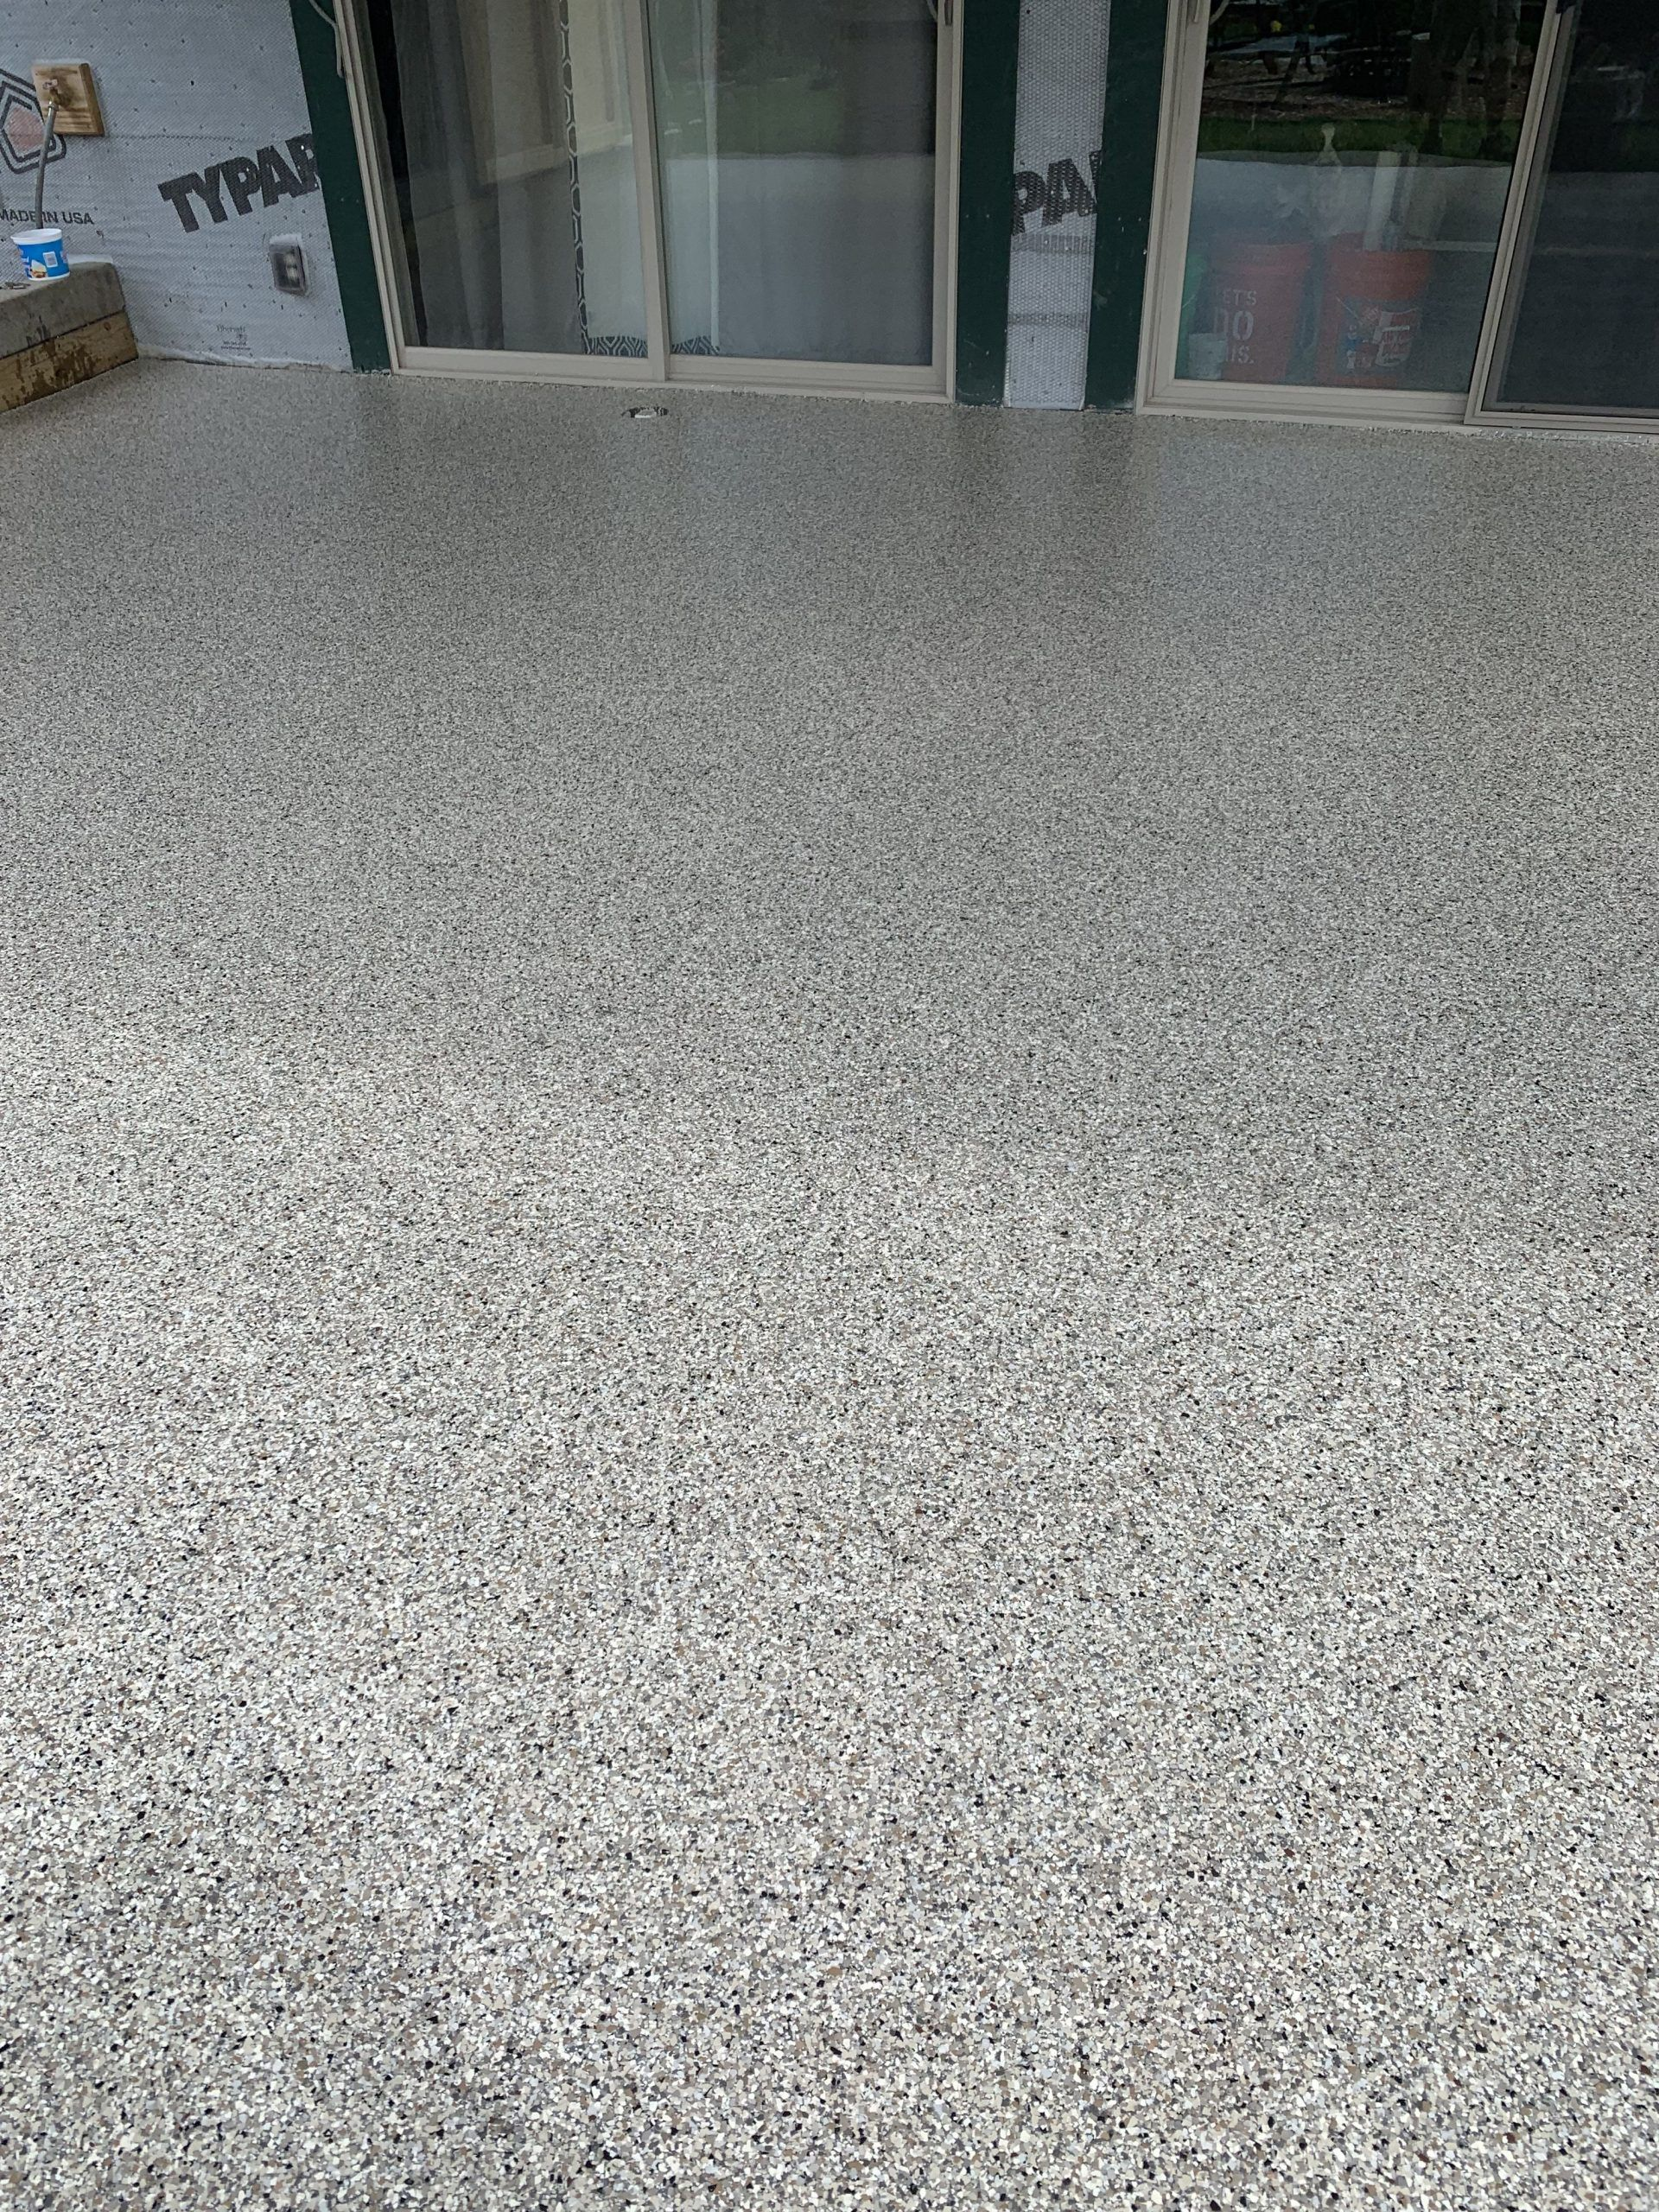 Full Flake Epoxy Porch Flooring In Ely Mn Www Innovativegar Ely Epoxy Flake Flooring Full Porch Wwwinnov In 2020 Porch Flooring Epoxy Floor Flooring Projects